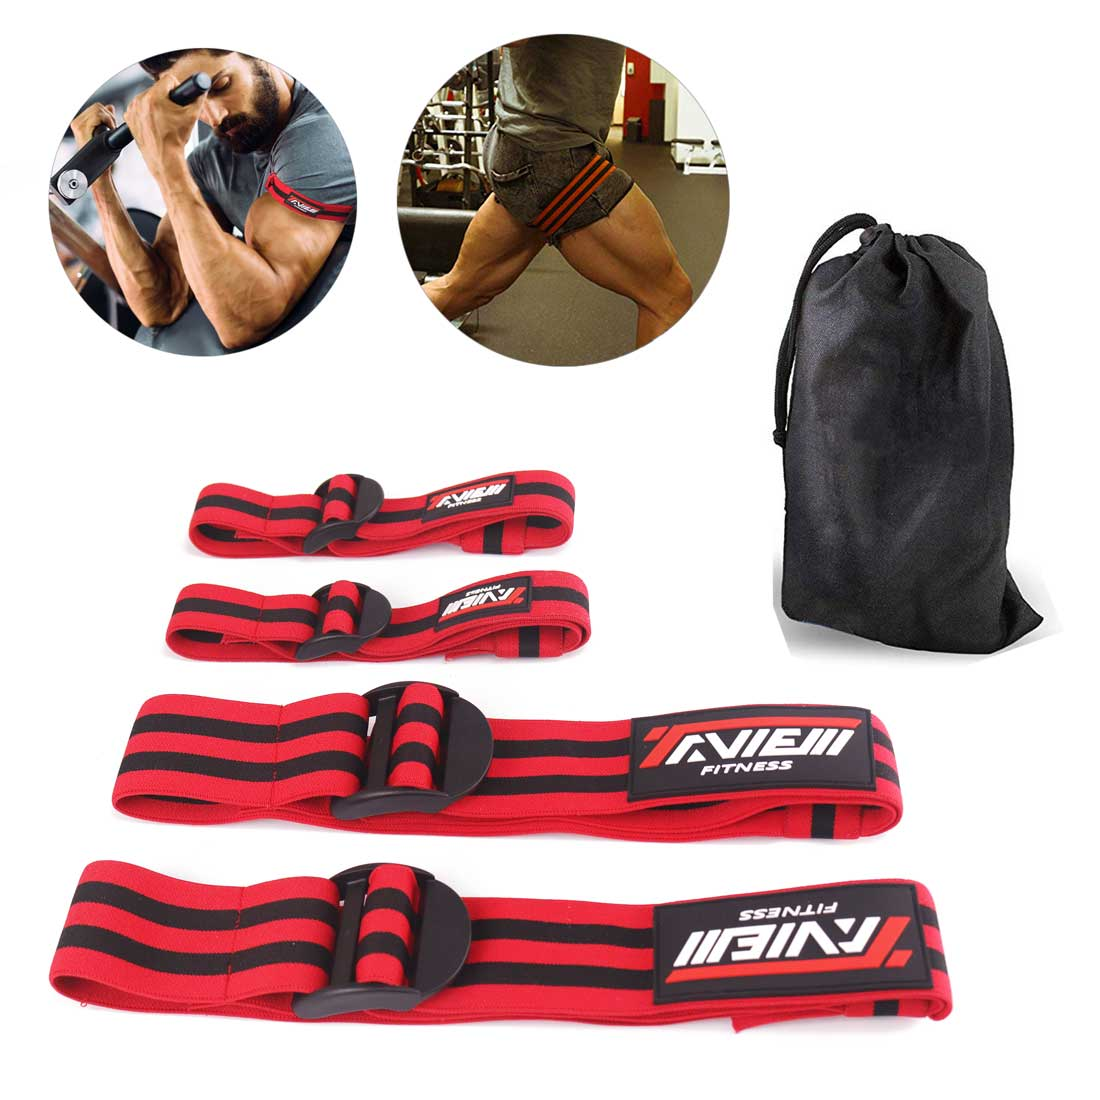 Fitness Occlusion Bands Bodybuilding Weight Blood Flow Restriction Bands Arm Leg Wraps Fast Muscle Growth Gym Equipment|Weight Lifting| |  - title=